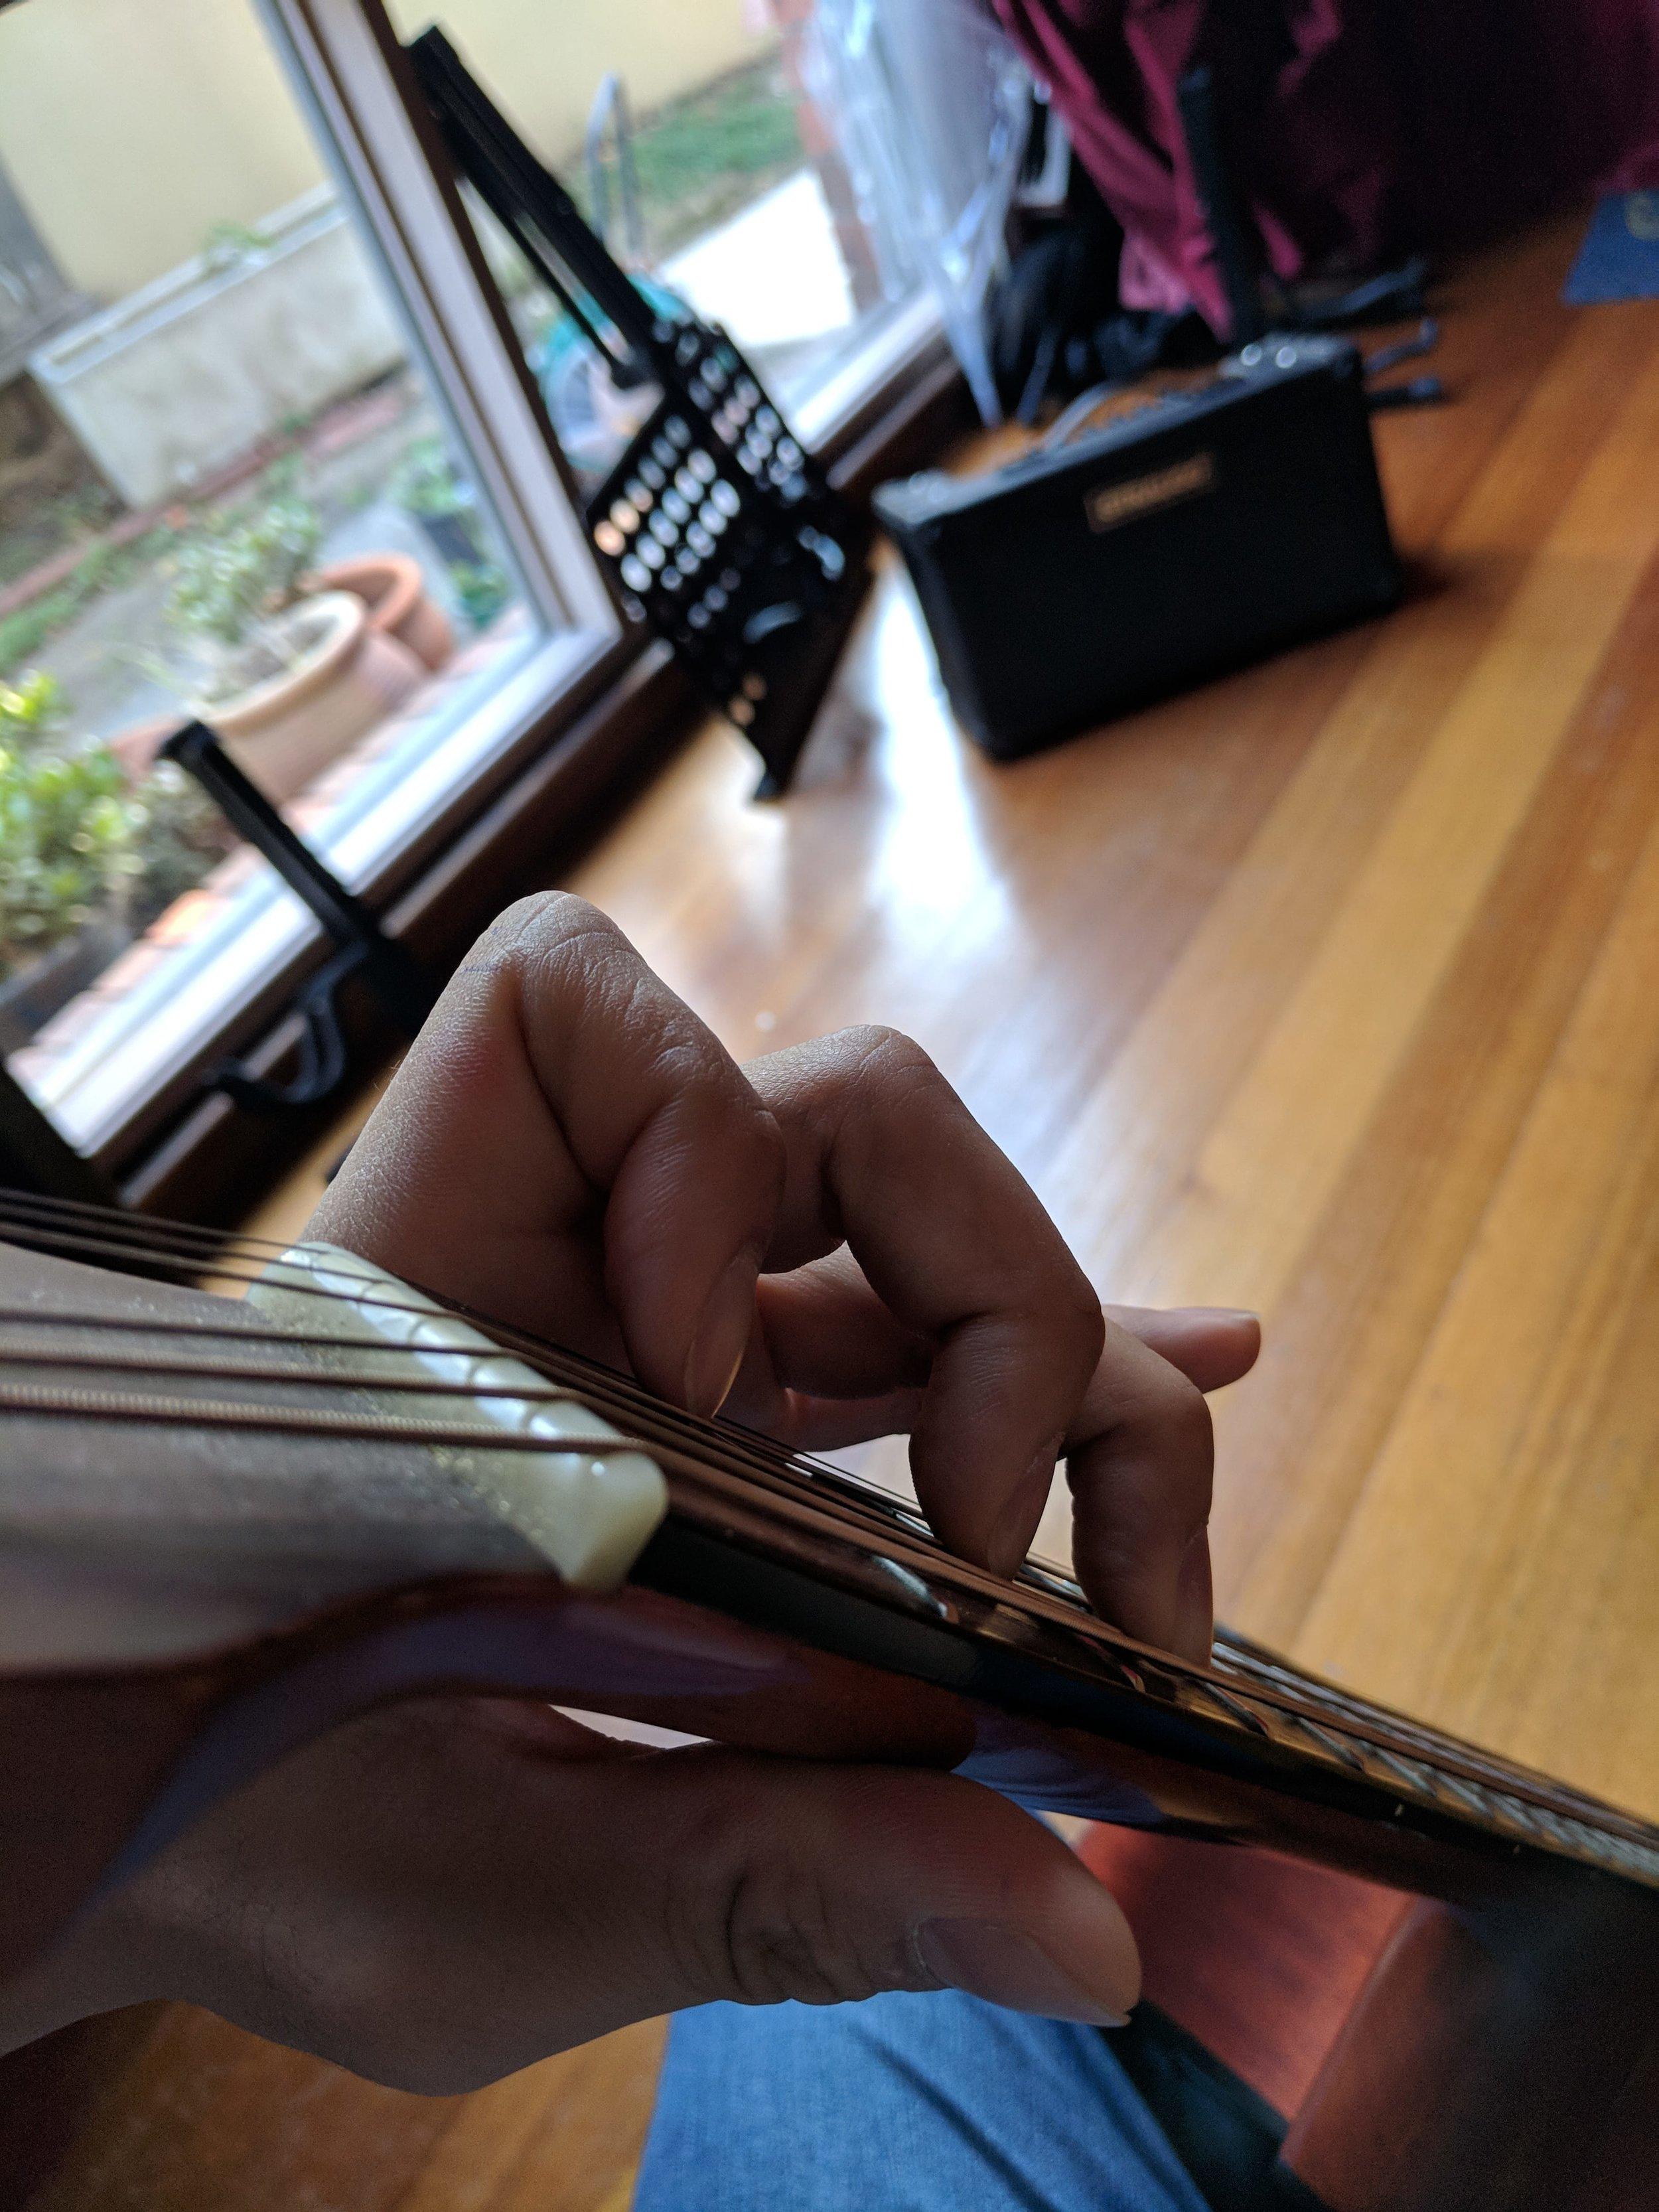 For normal fretting - the thumb at the back of the neck is a good option. For guitar bends, you may like to put your thumb over the neck - but still remain parallel. Curl your wrists to leave a strong gap - this prevents palm muting by your fretting hand.